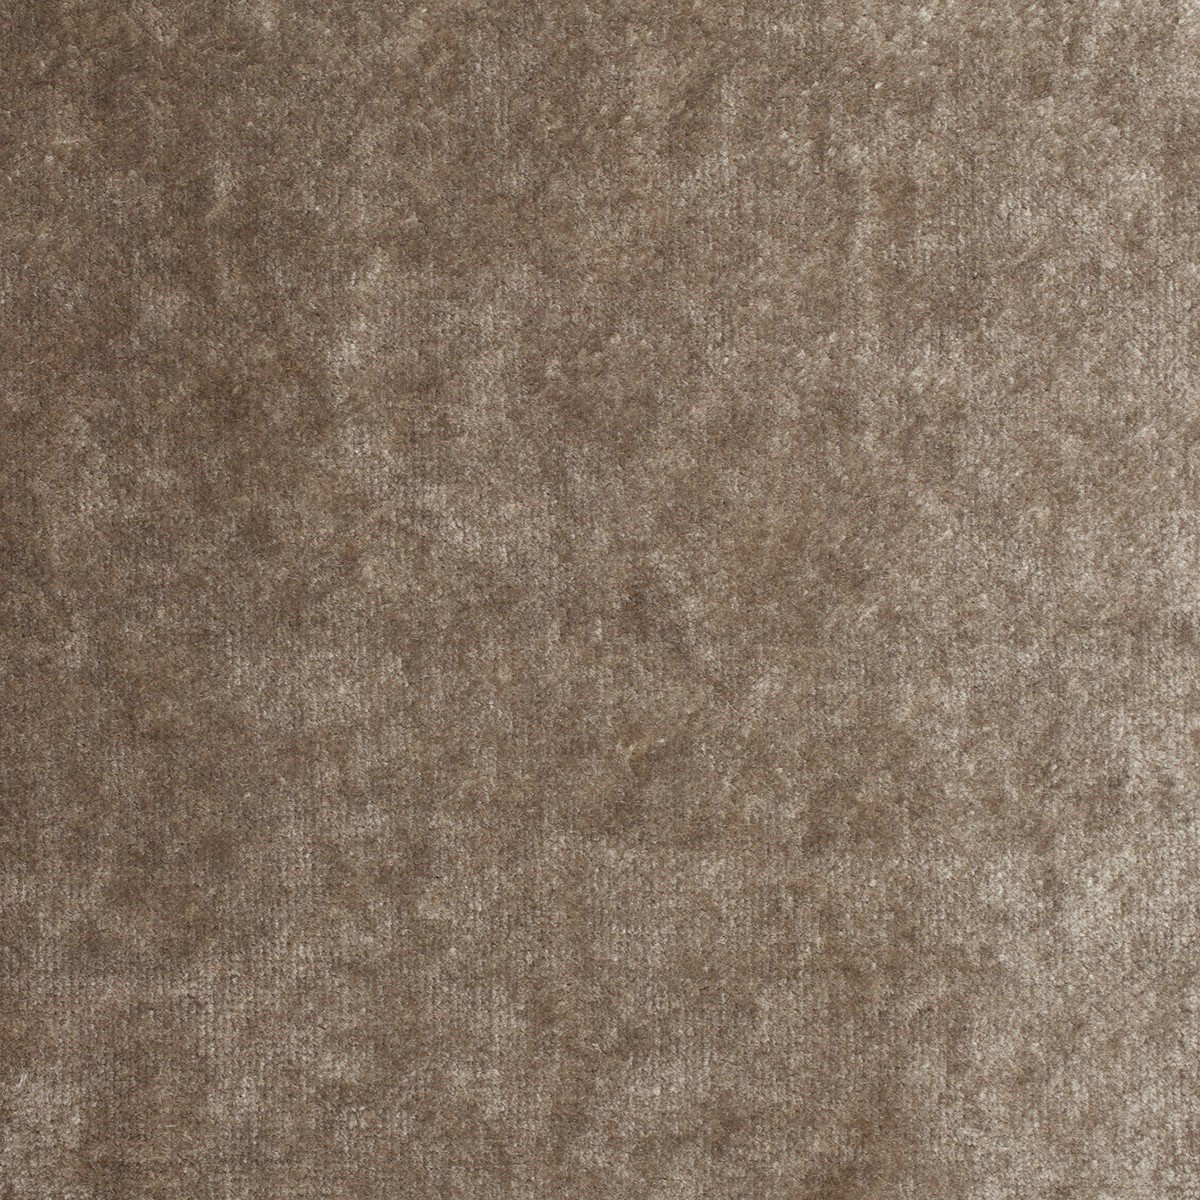 Image of Harlequin Fabric Boutique, 130006